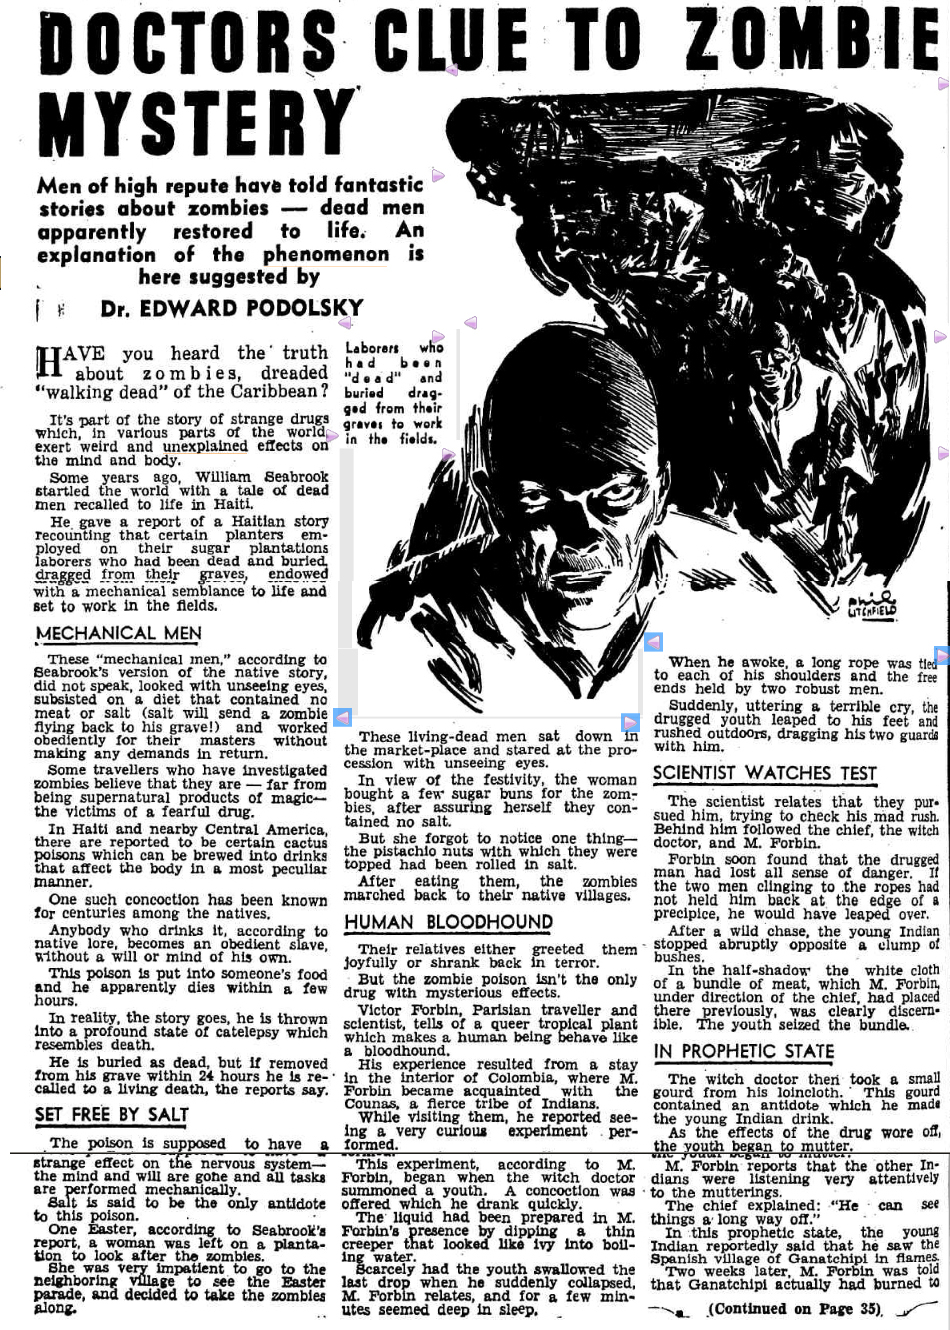 ZOMBIE mystery The Worlds News (Sydney NSW) 15 Nov 1941TOTAAL.jpg